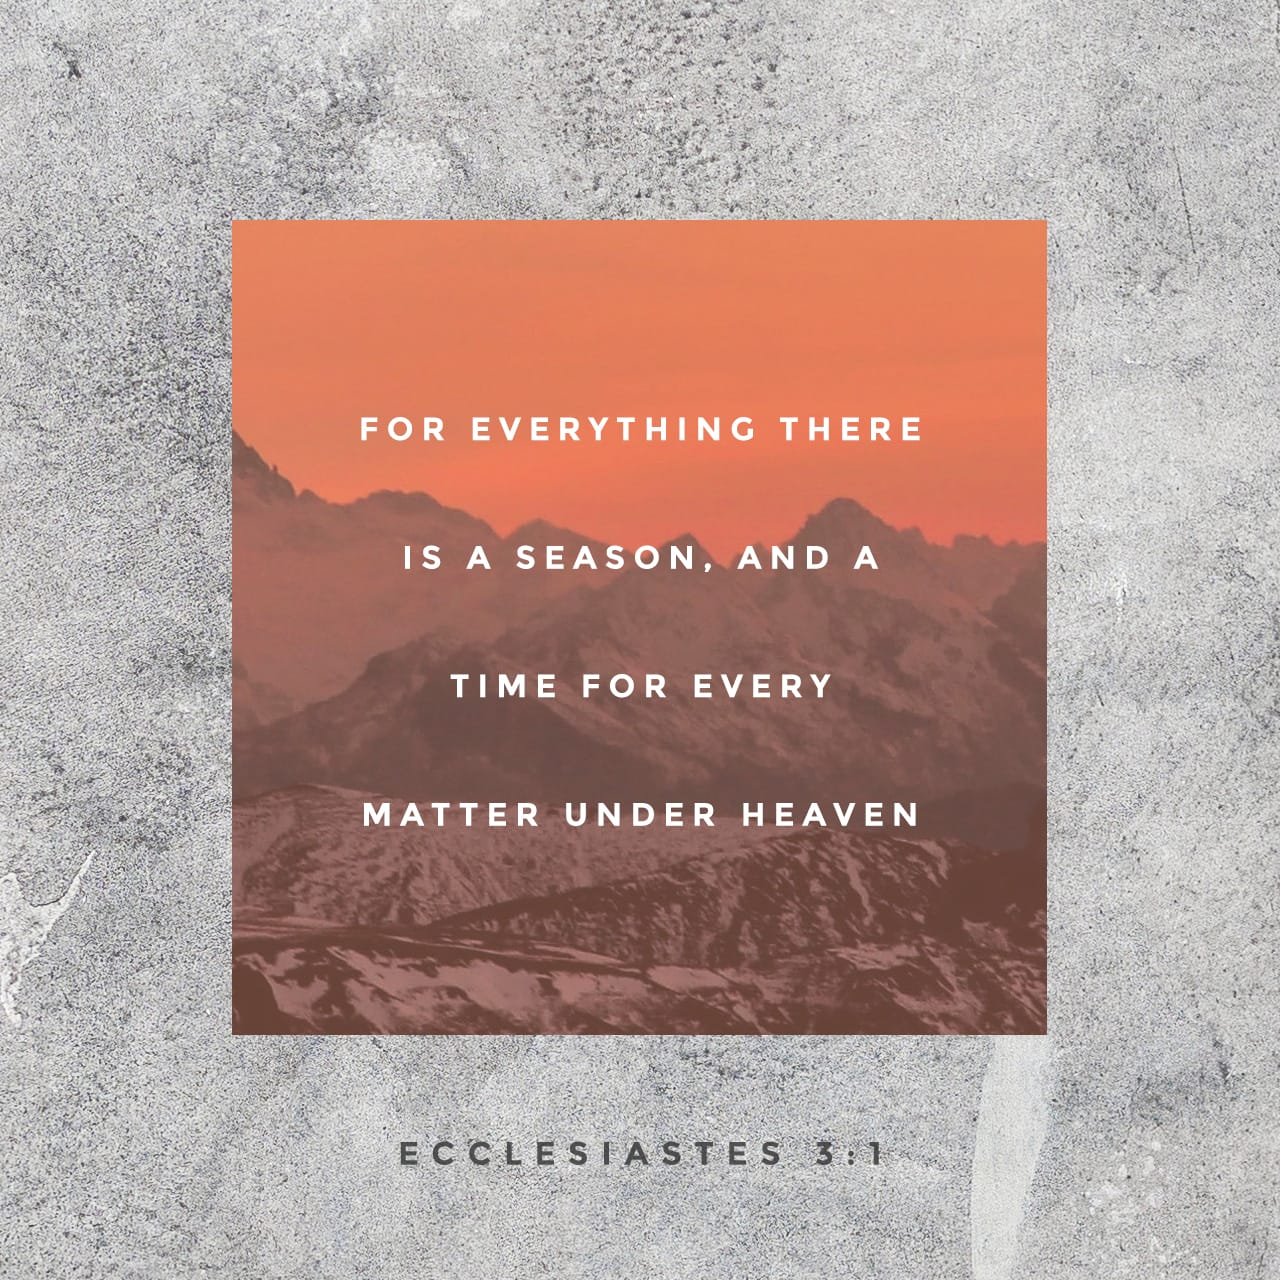 Ecclesiastes 3:1-8 There's an opportune time to do things, a right time for everything on the earth: A right time for birth and another for death, A right time to plant and another to reap, A right time to kill and ano | The Message (MSG)